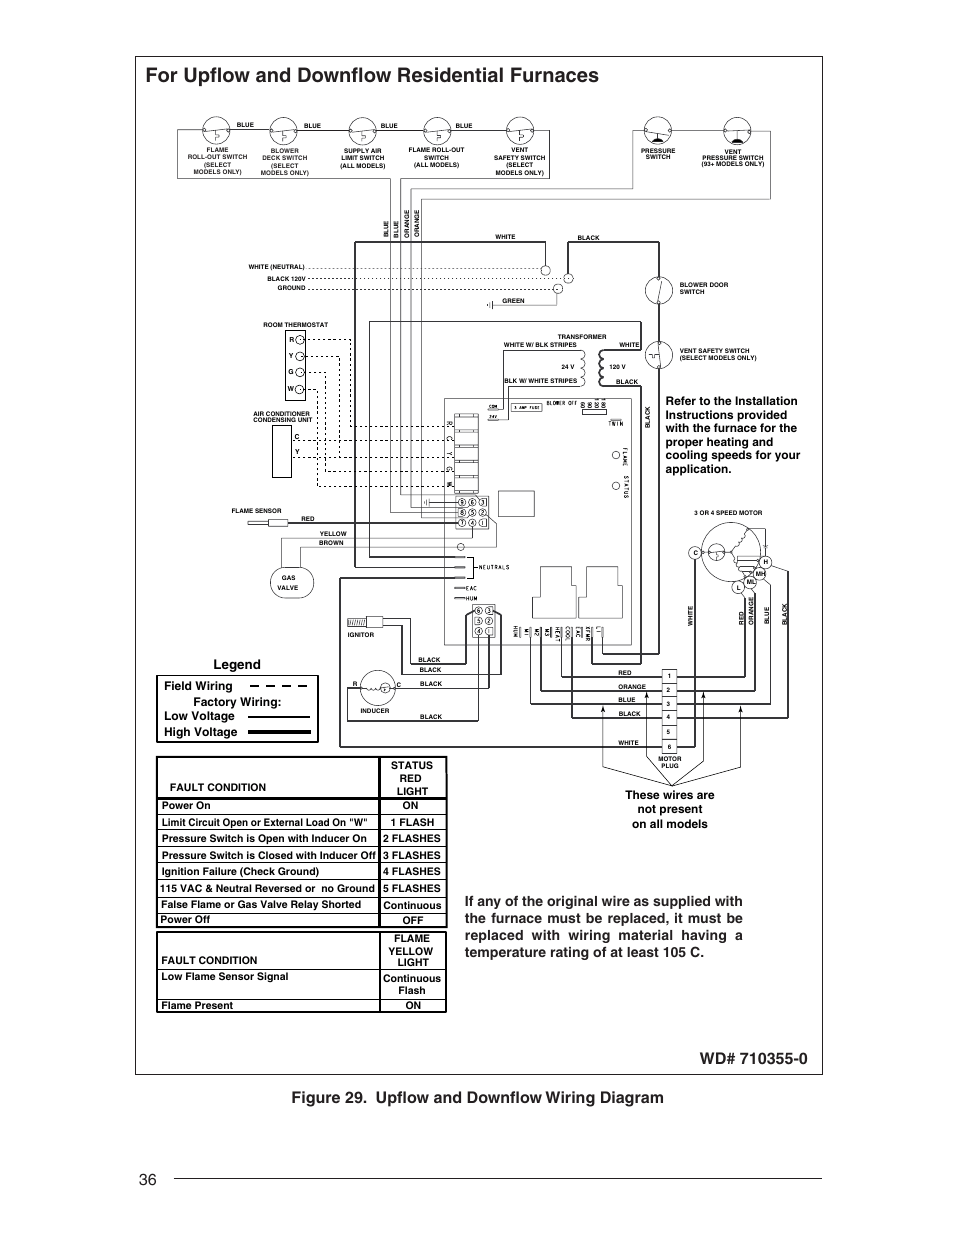 nordyne rl 90 page36?resize\=665%2C861 edenpure 1000 wiring diagram edenpure gen 3 wiring diagram, 1000 edenpure 1000xl wiring diagram at gsmx.co